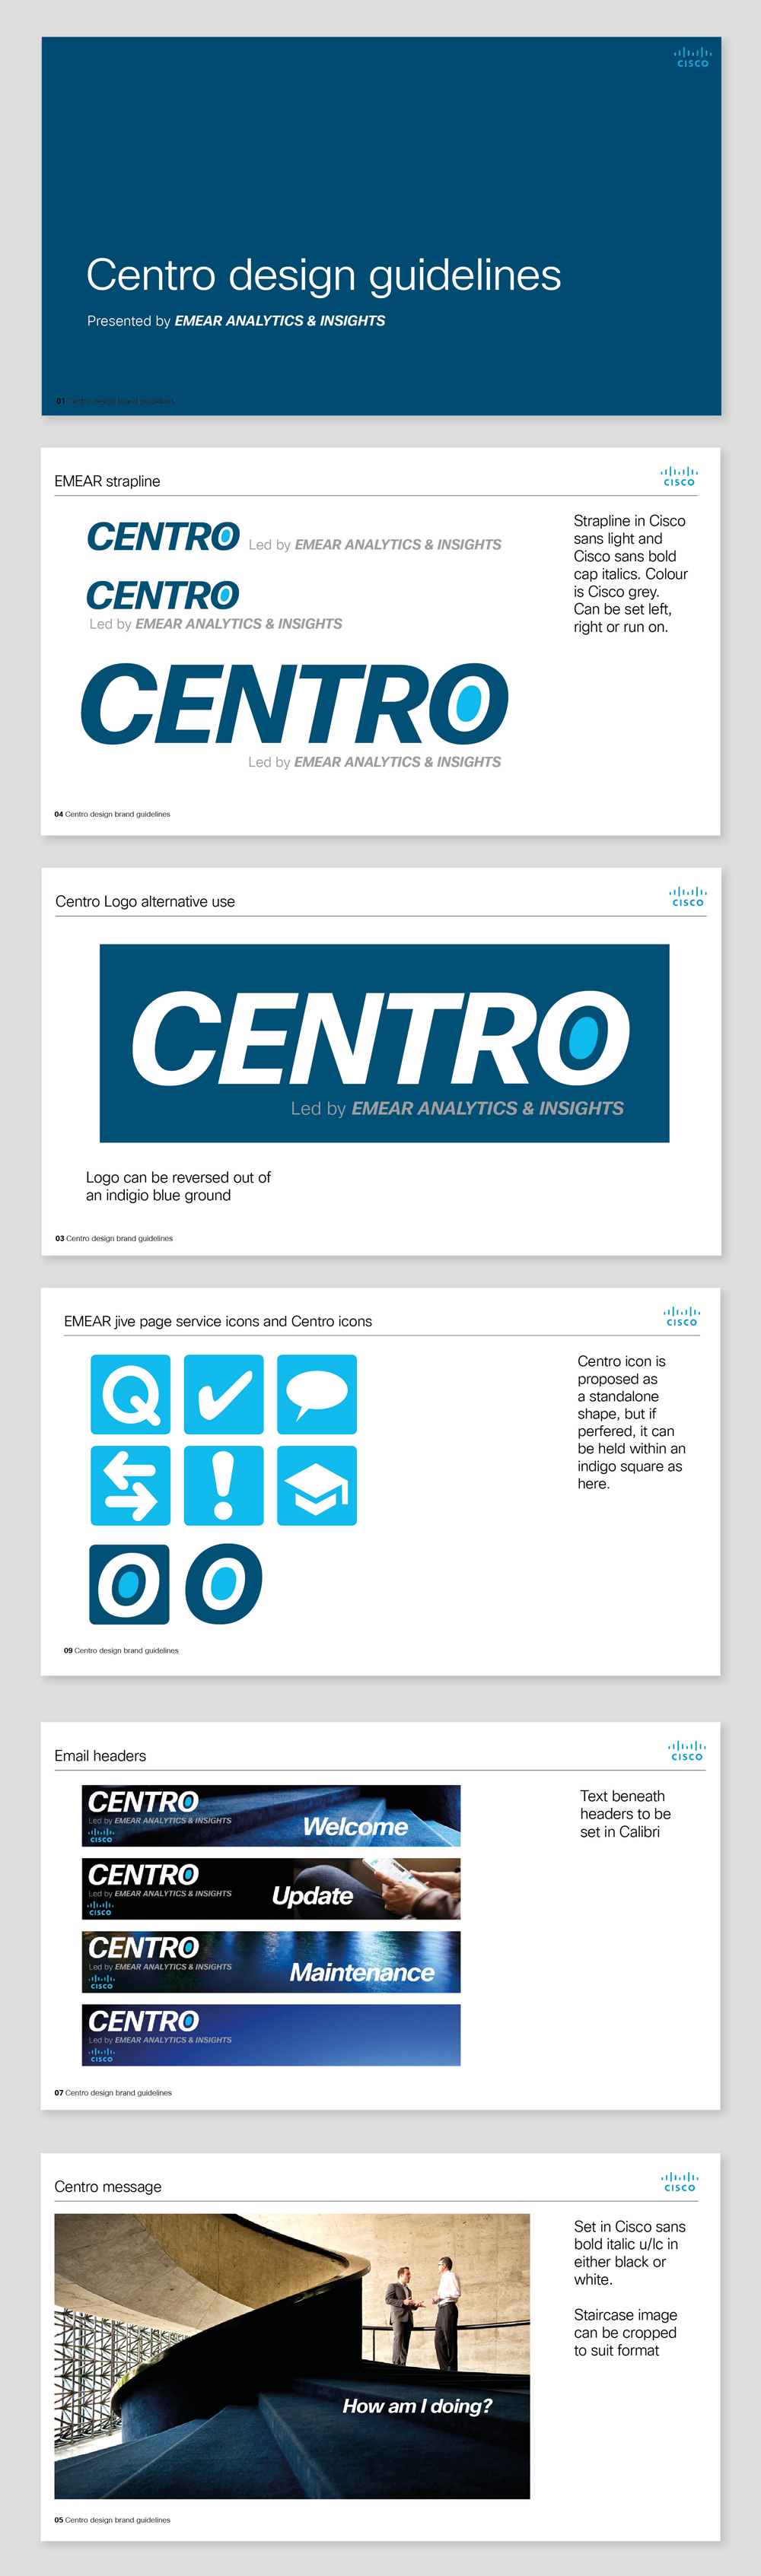 Increasing Cisco's sales team use of Centro, a real-time data dashboard